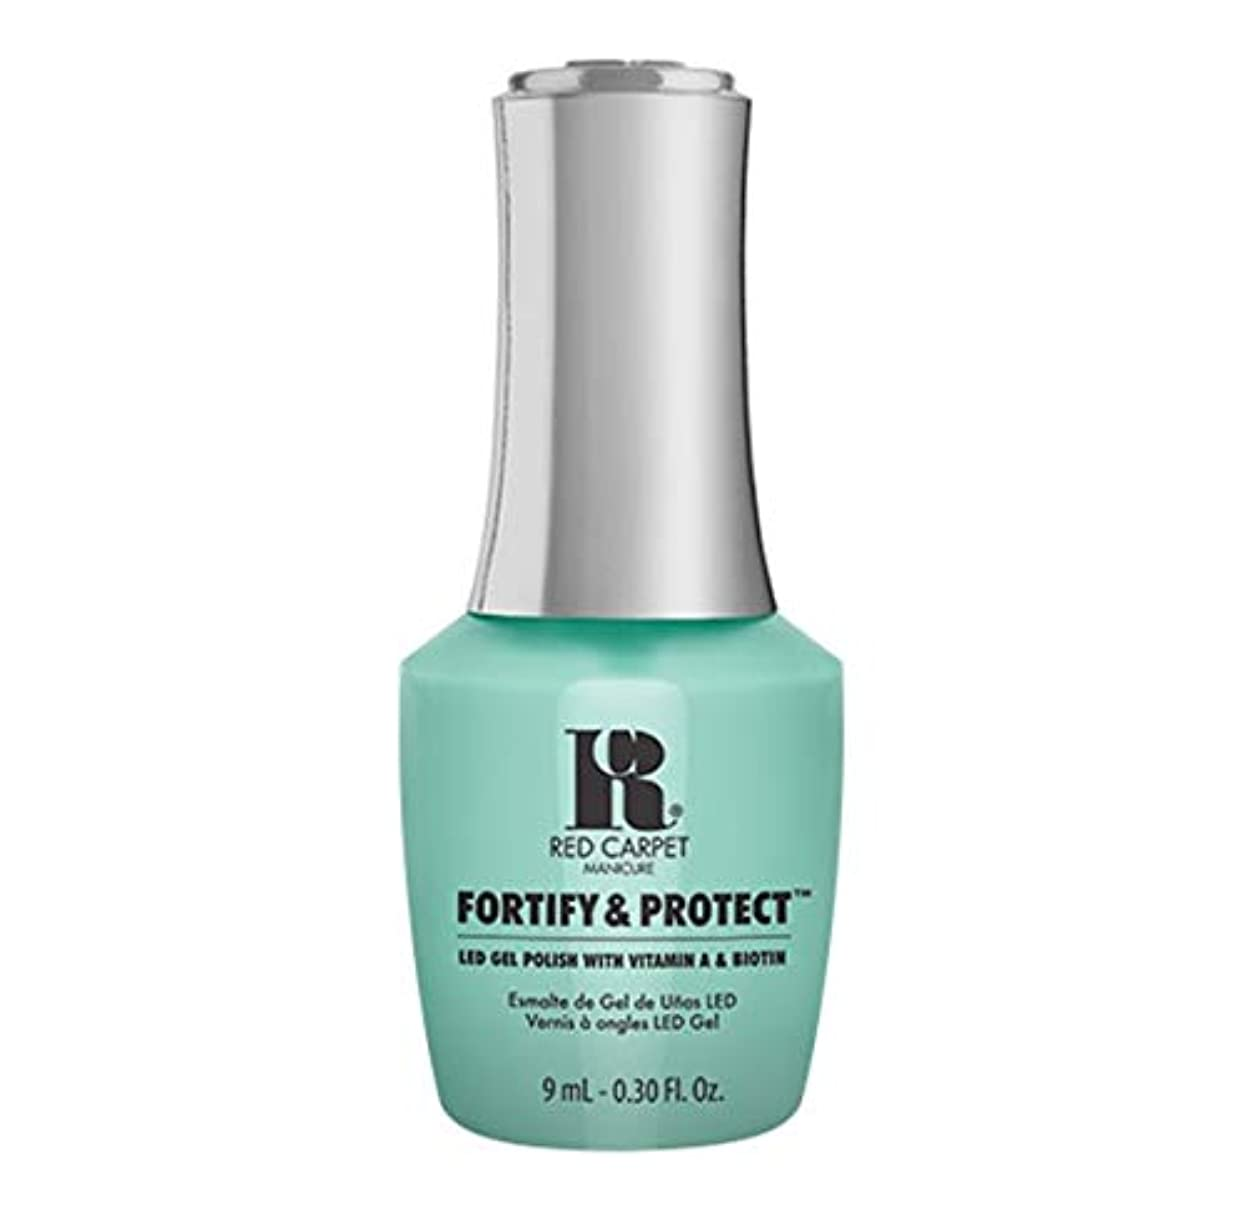 維持するおなかがすいたやろうRed Carpet Manicure - Fortify & Protect - Front And Center - 9ml / 0.30oz